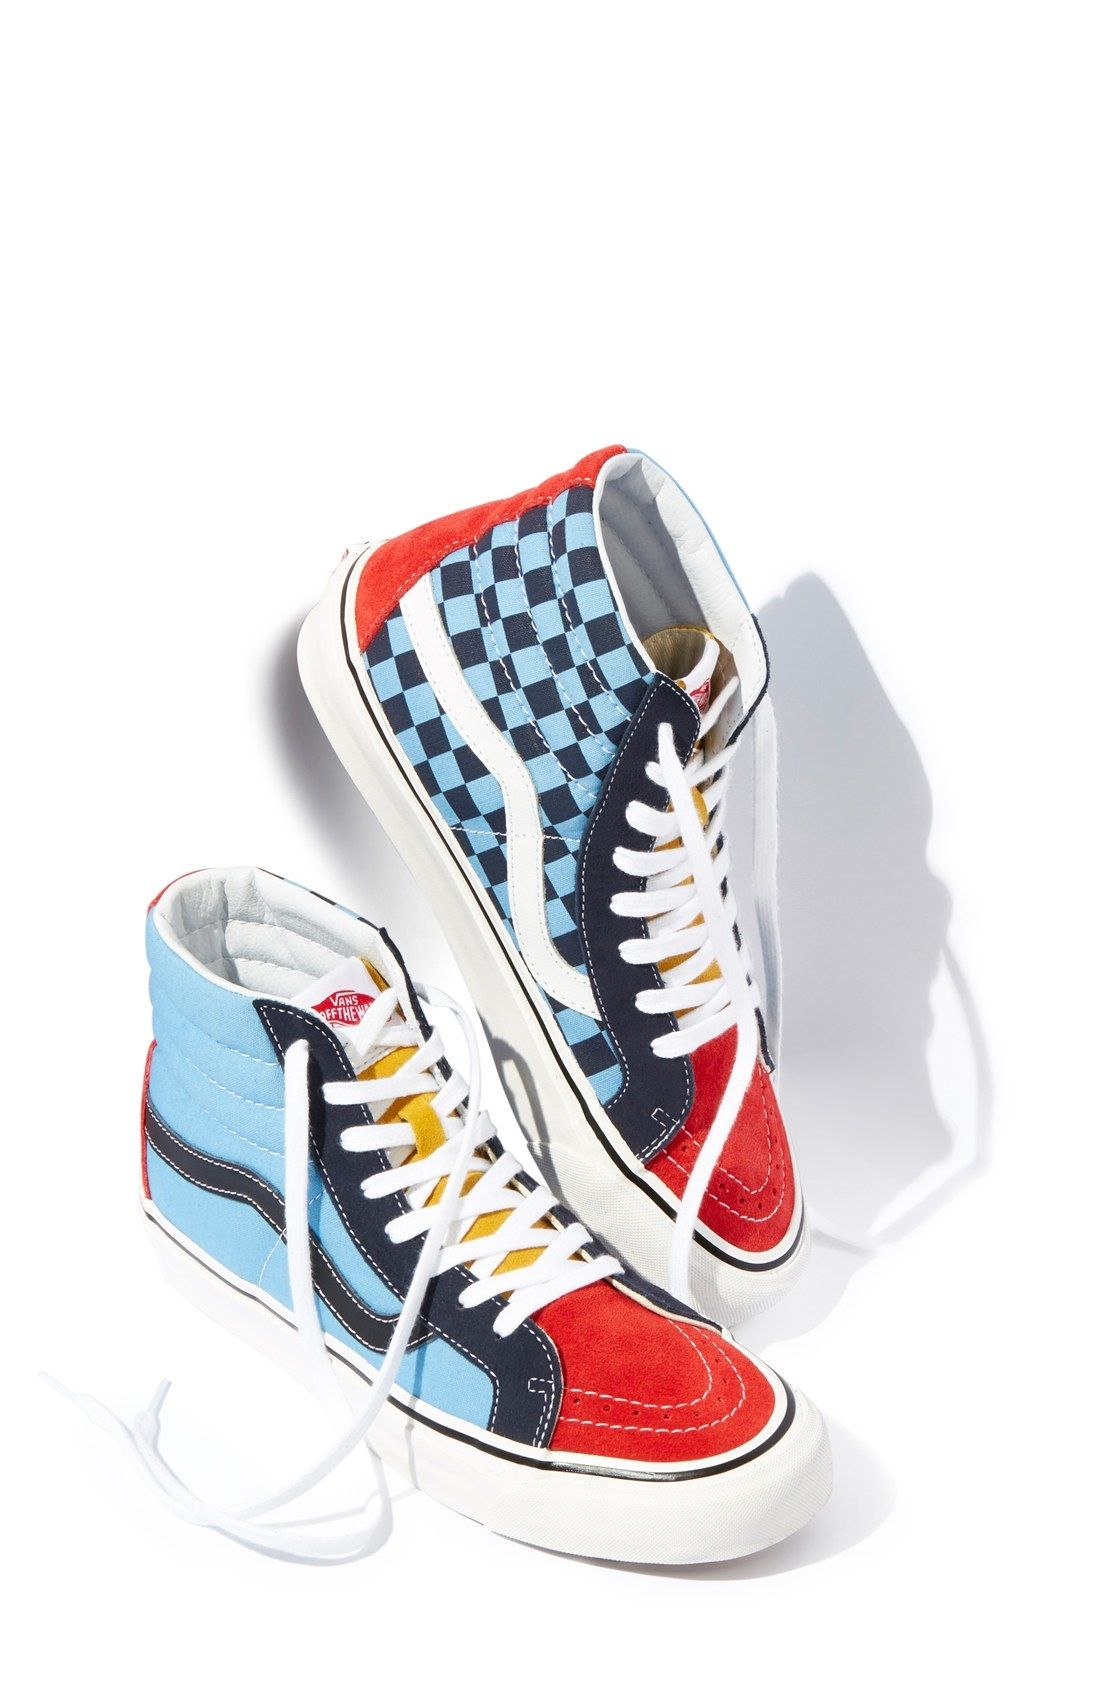 Camionnettes Sk8-hi 38 Reissue High-tops Et Baskets iZ5FRXtE